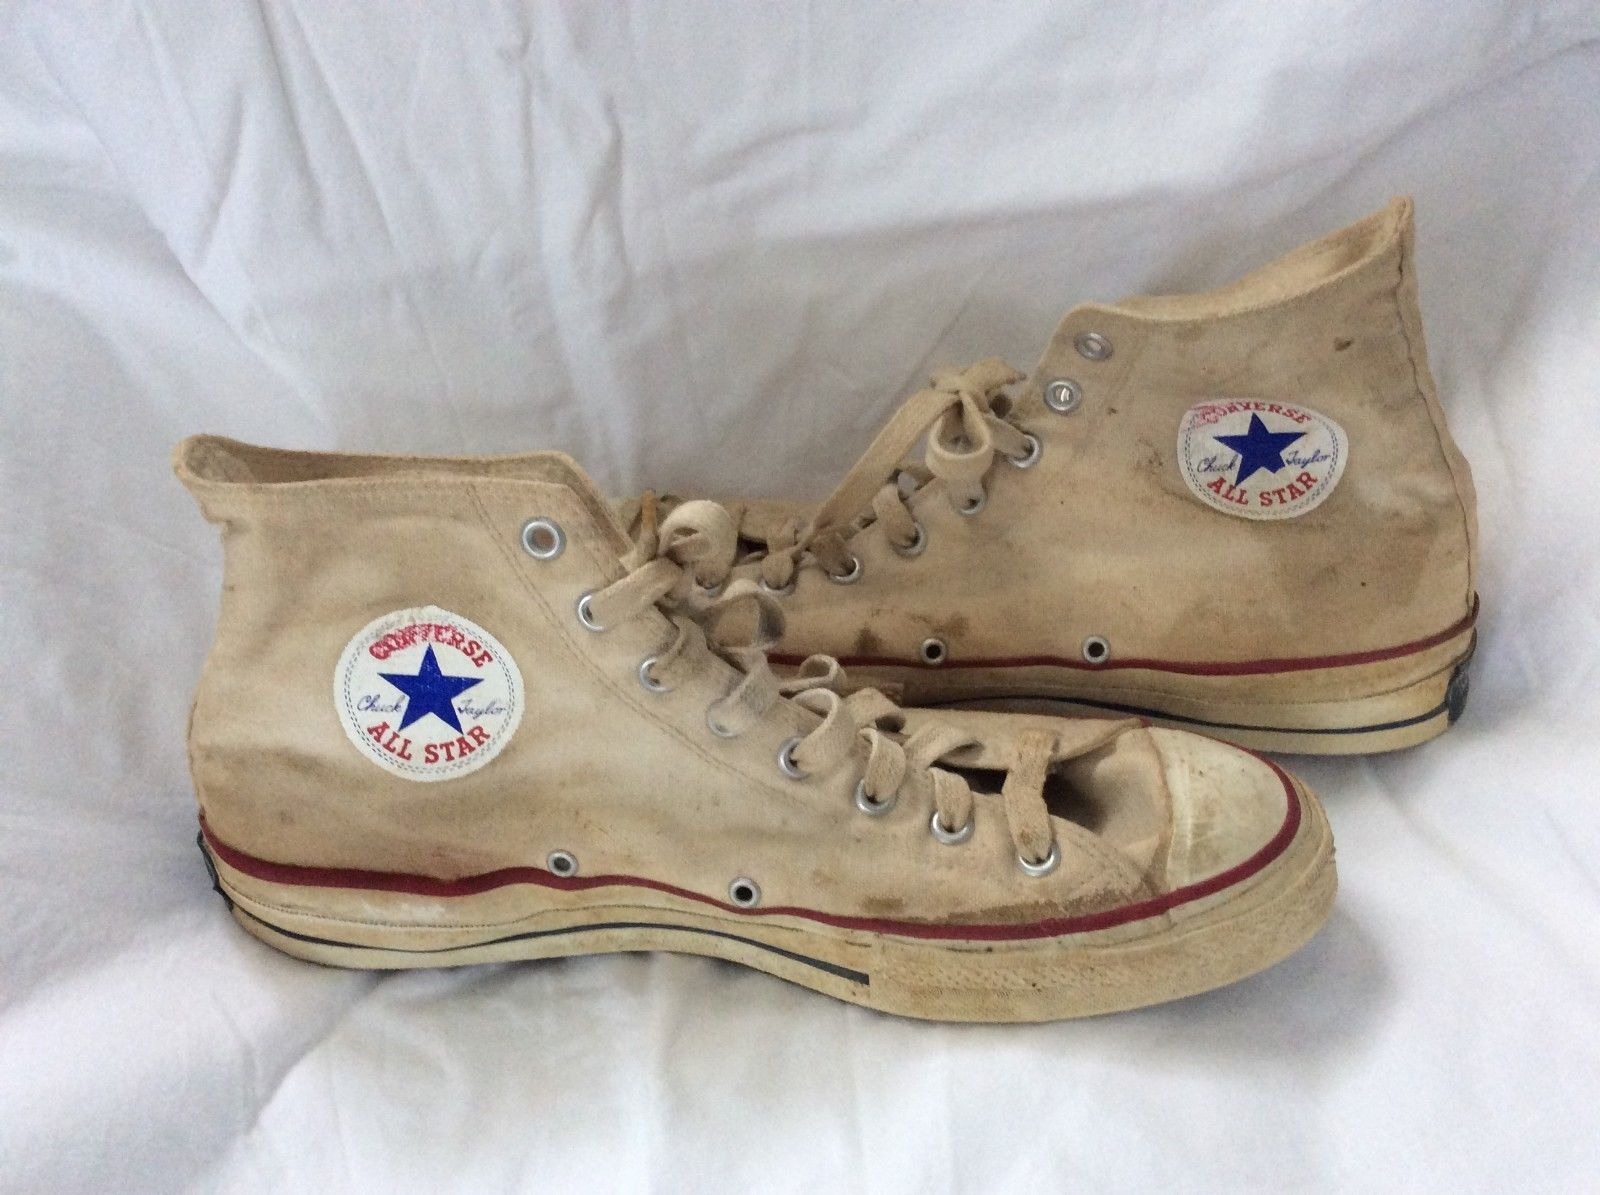 b2357c0eb81b Vintage Converse Chuck Taylor BLUE LABEL 1960s High-Top Sneakers USA Made  Shoes